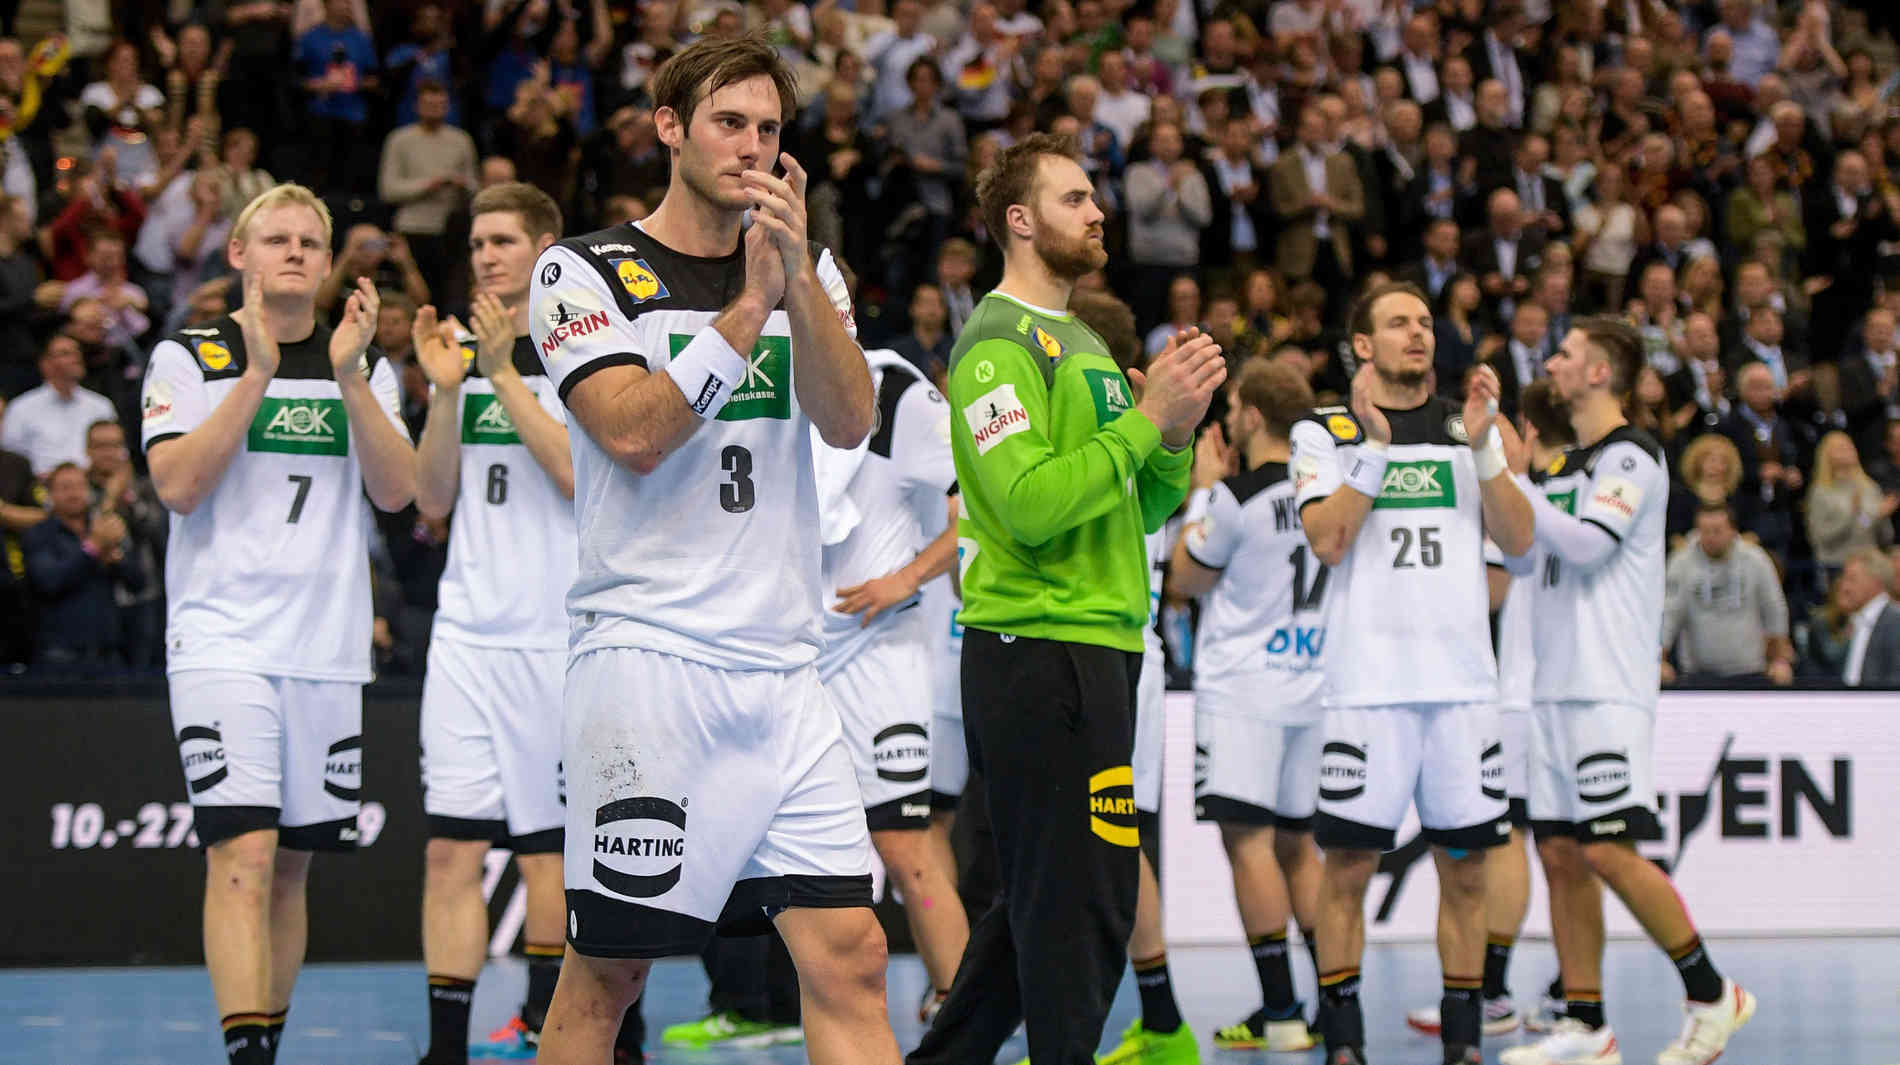 Norwegen Handball Wm